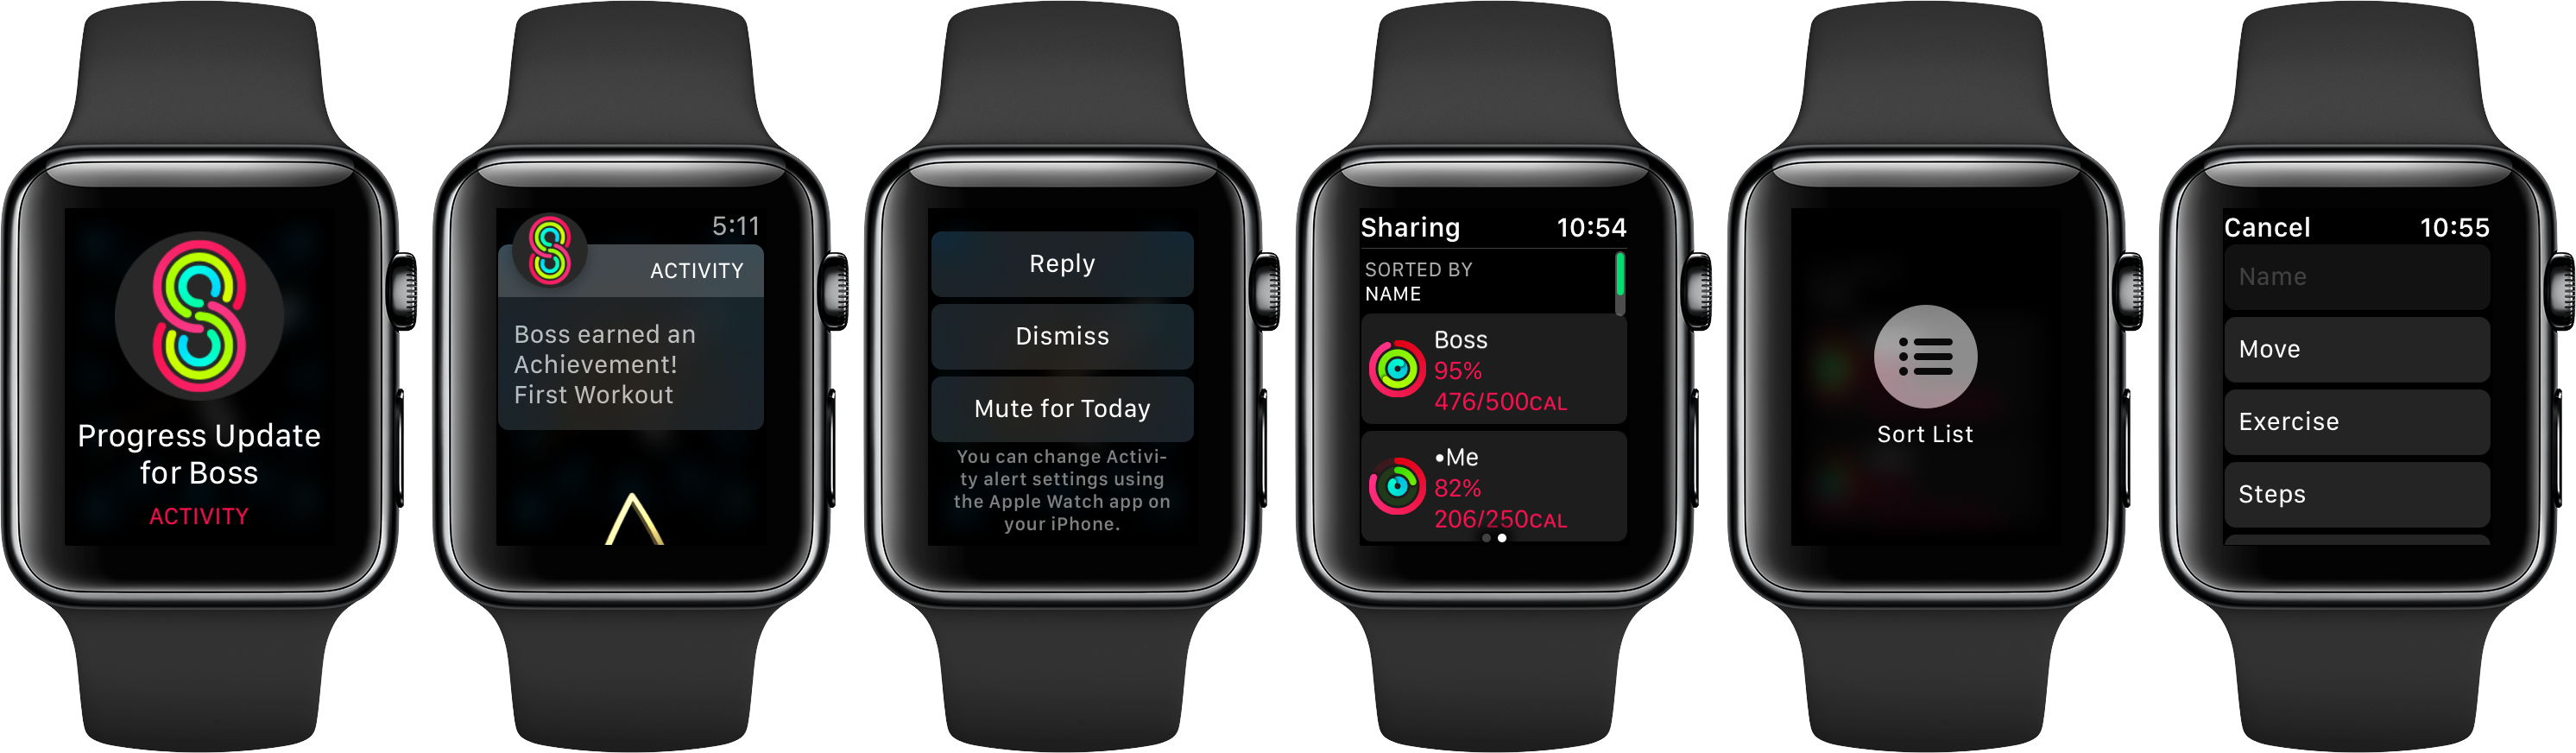 watchOS 3 Activity Sharing Apple Watch screenshot 002